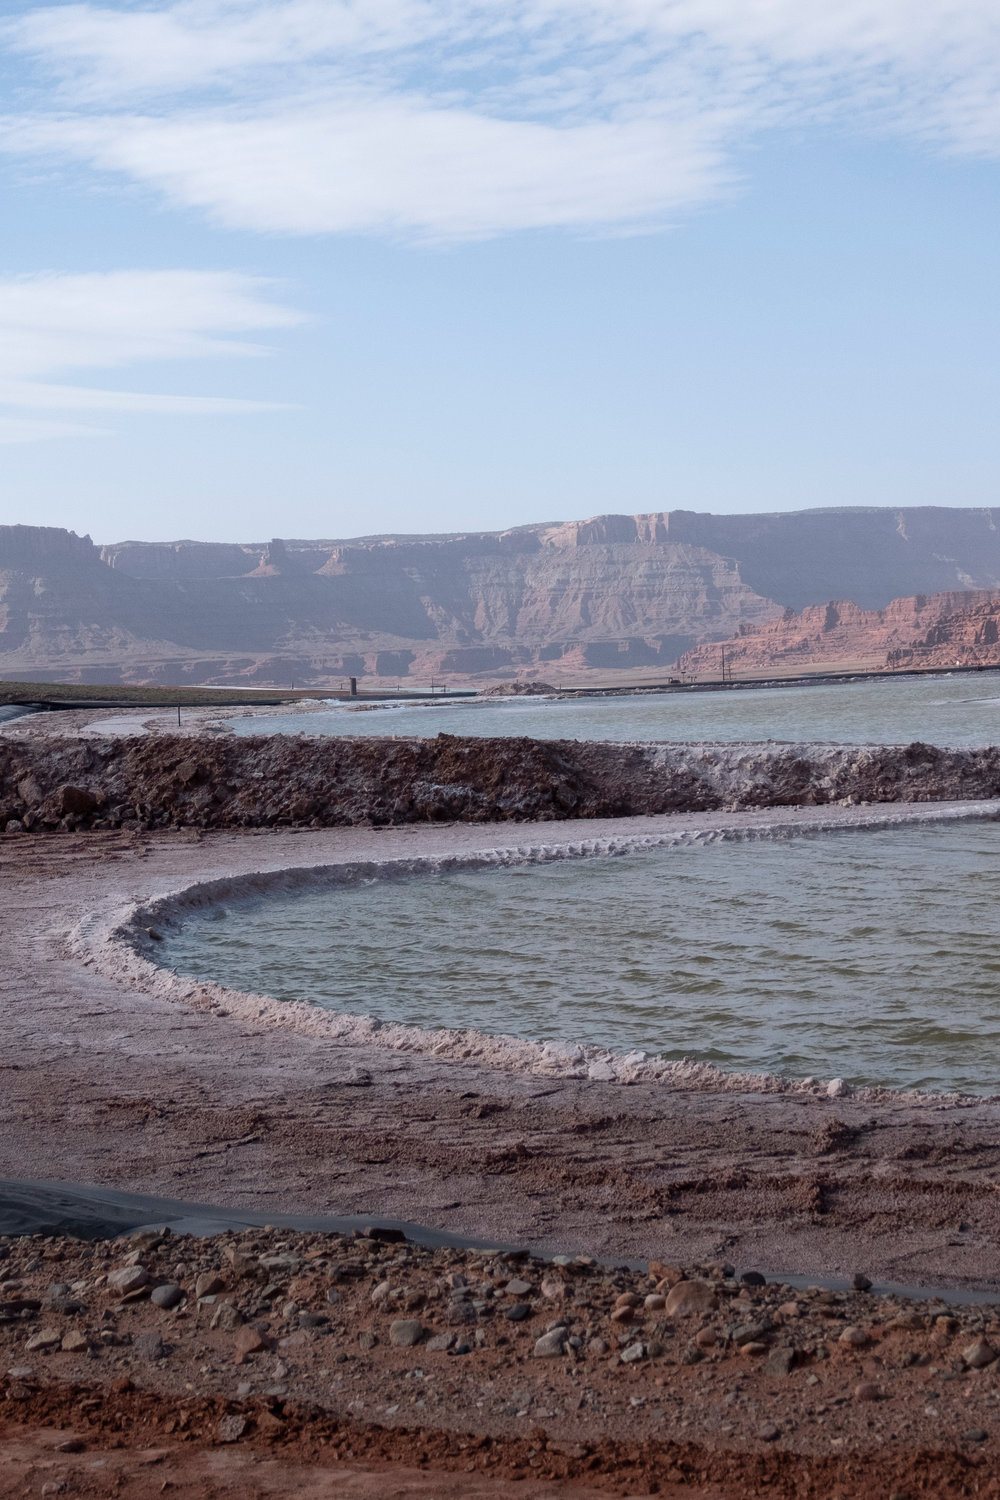 Intrepid Potash evaporation pond,  Moab, Utah 2018.